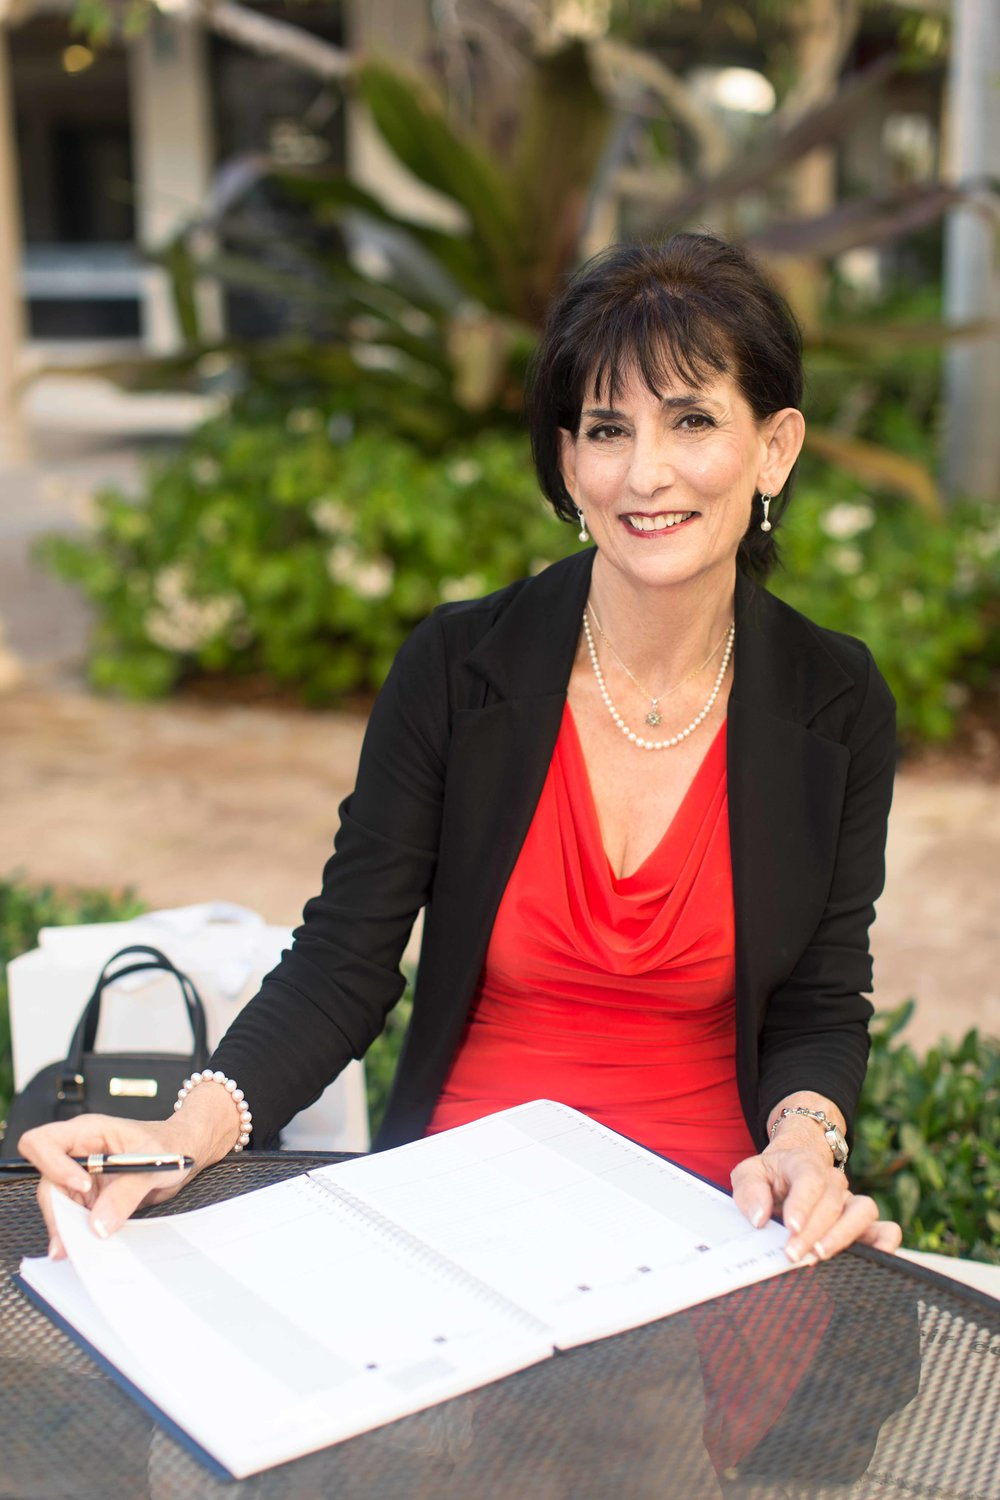 personal-branding-photography-realtor-west-palm-beach-south-florida